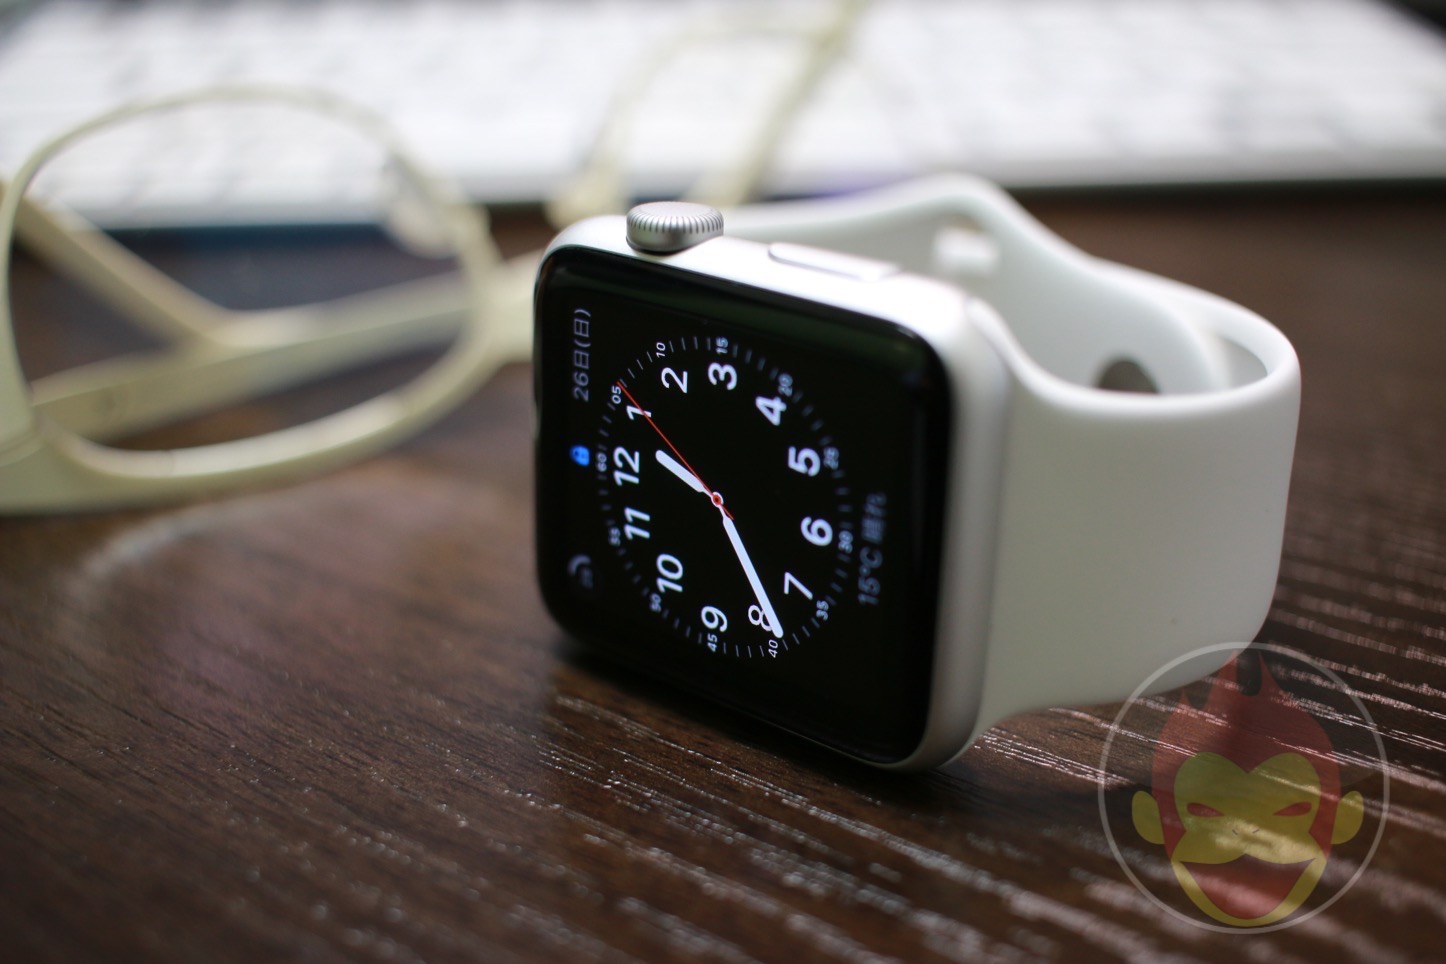 Apple-Watch-Images-19.JPG